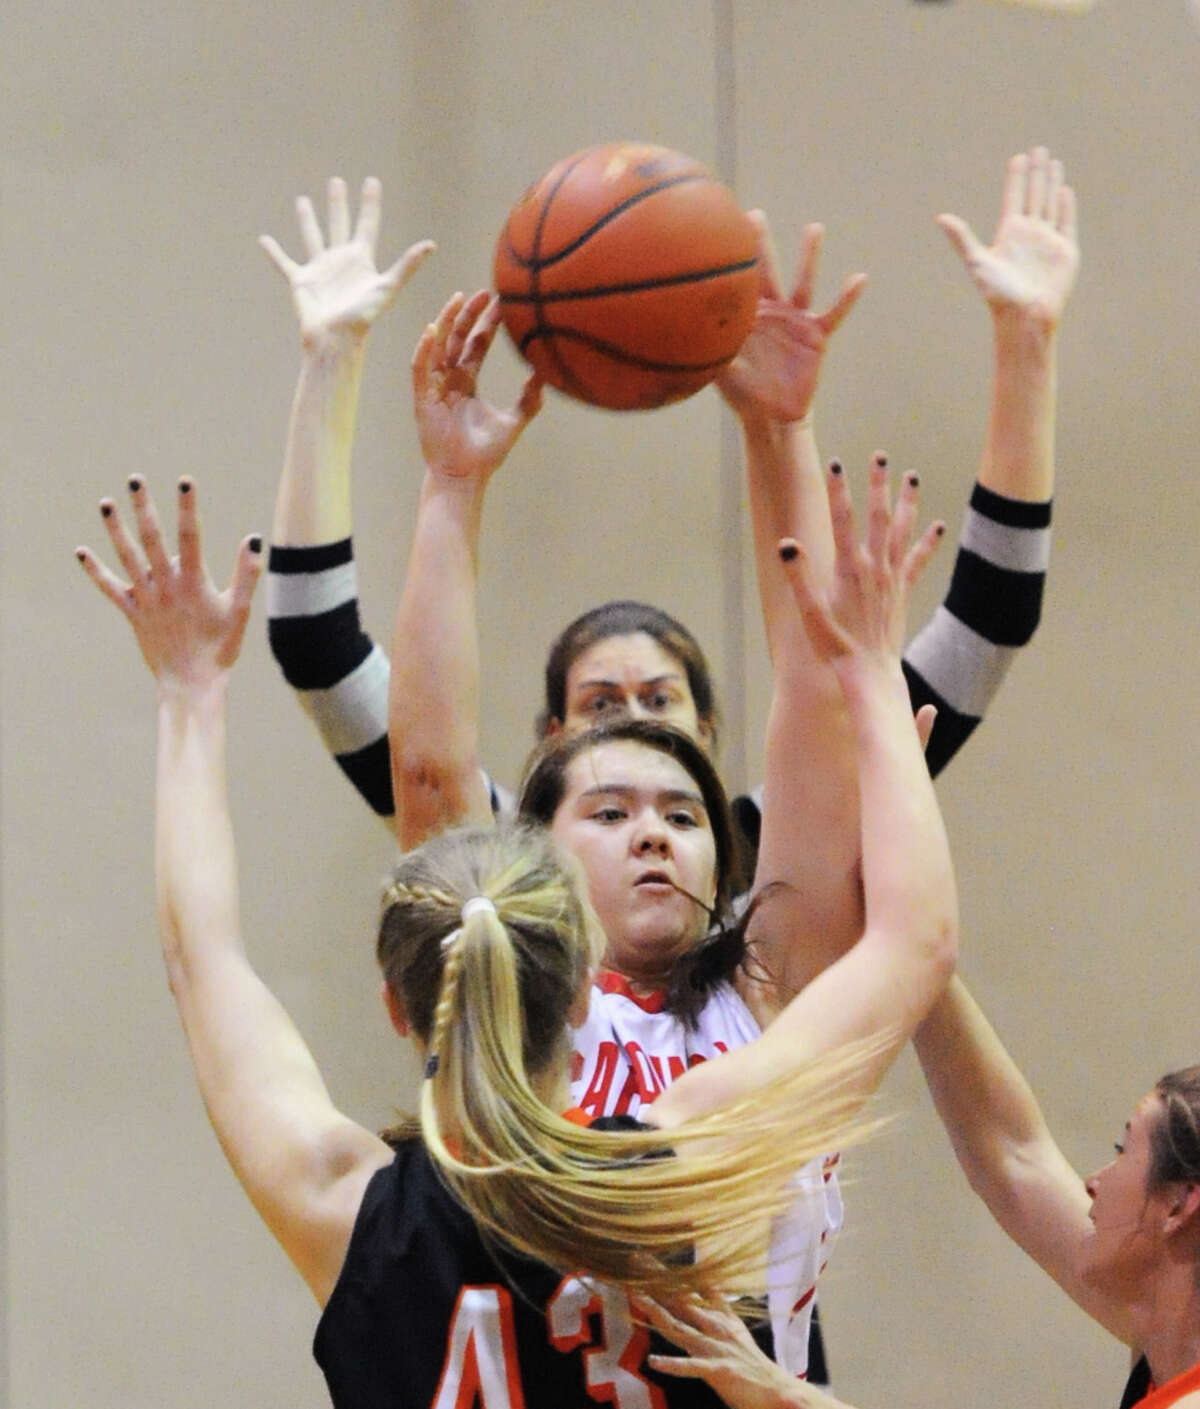 As Ridgefield High School Girls Basketball Coach, Katie Reed, background, signals for her defender, Kaitlyn Kynast (#43), foreground, to keep her hands up, Jamie Kockenmeister, center, of Greenwich, passes the ball during the game between Greenwich High School and Ridgefield High School at Greenwich, Tuesday night, Jan. 14, 2014.